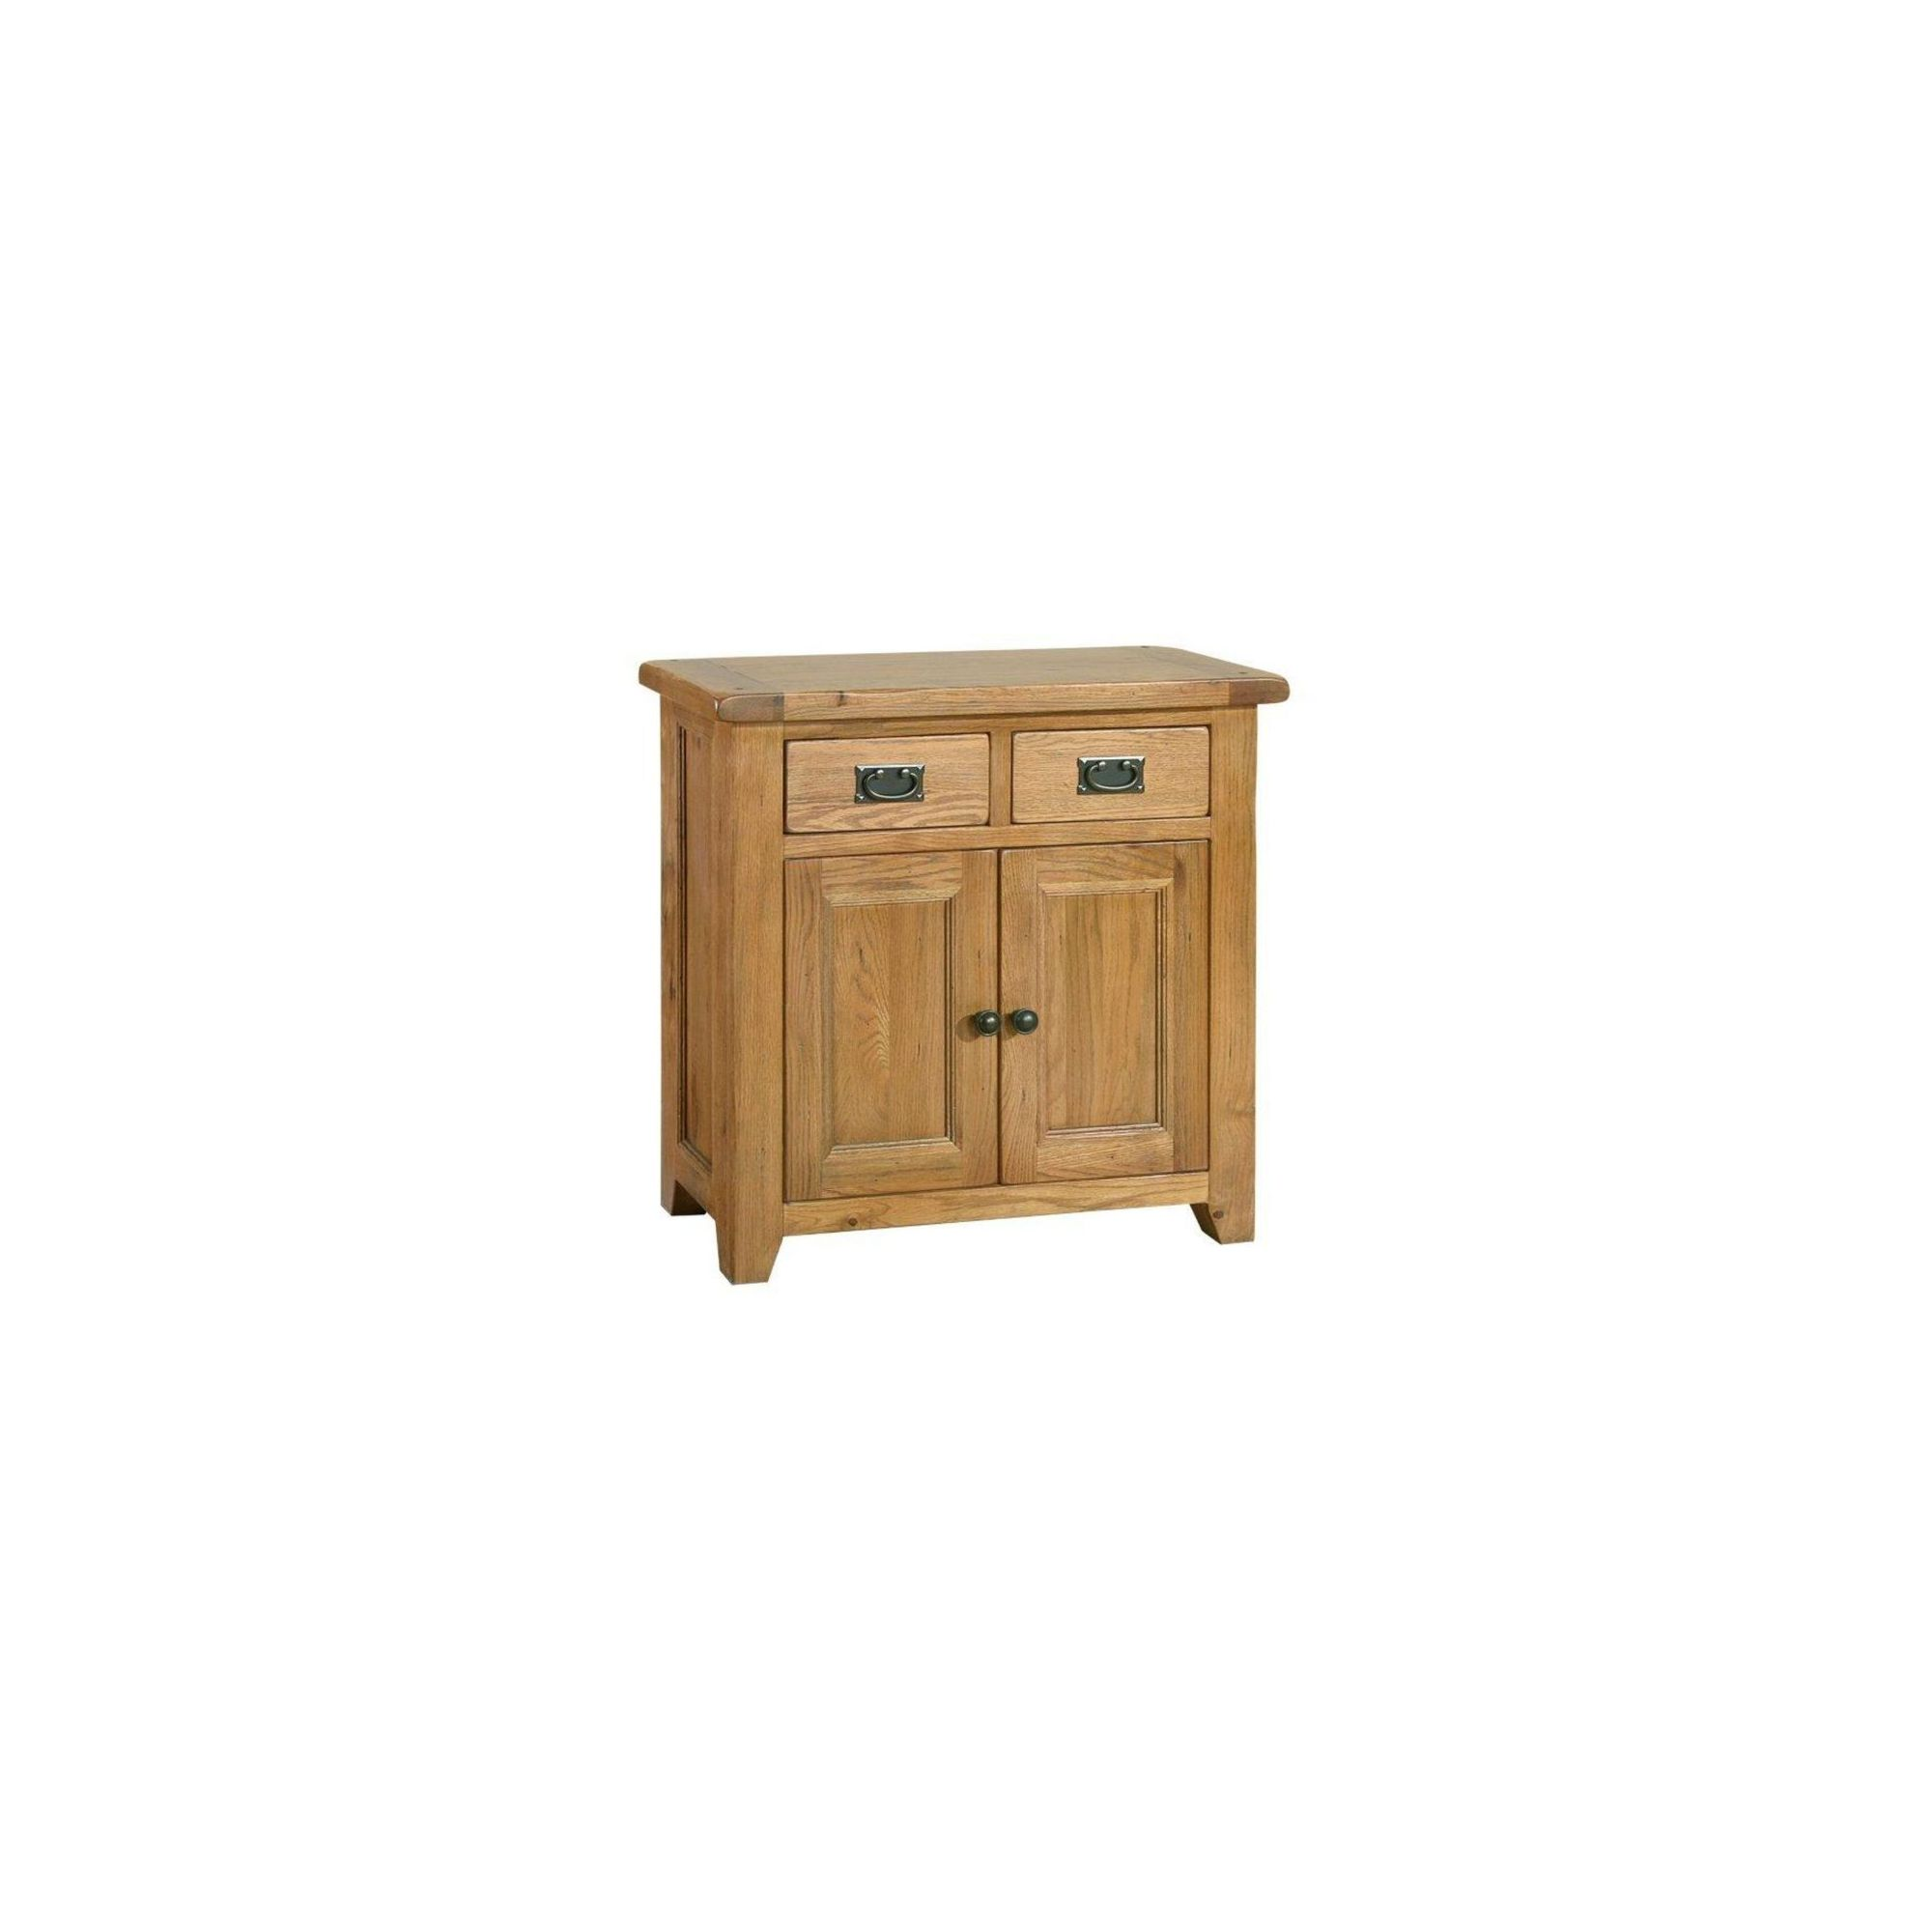 Kelburn Furniture Bordeaux Mini Sideboard in Medium Oak Stain and Satin Lacquer at Tesco Direct